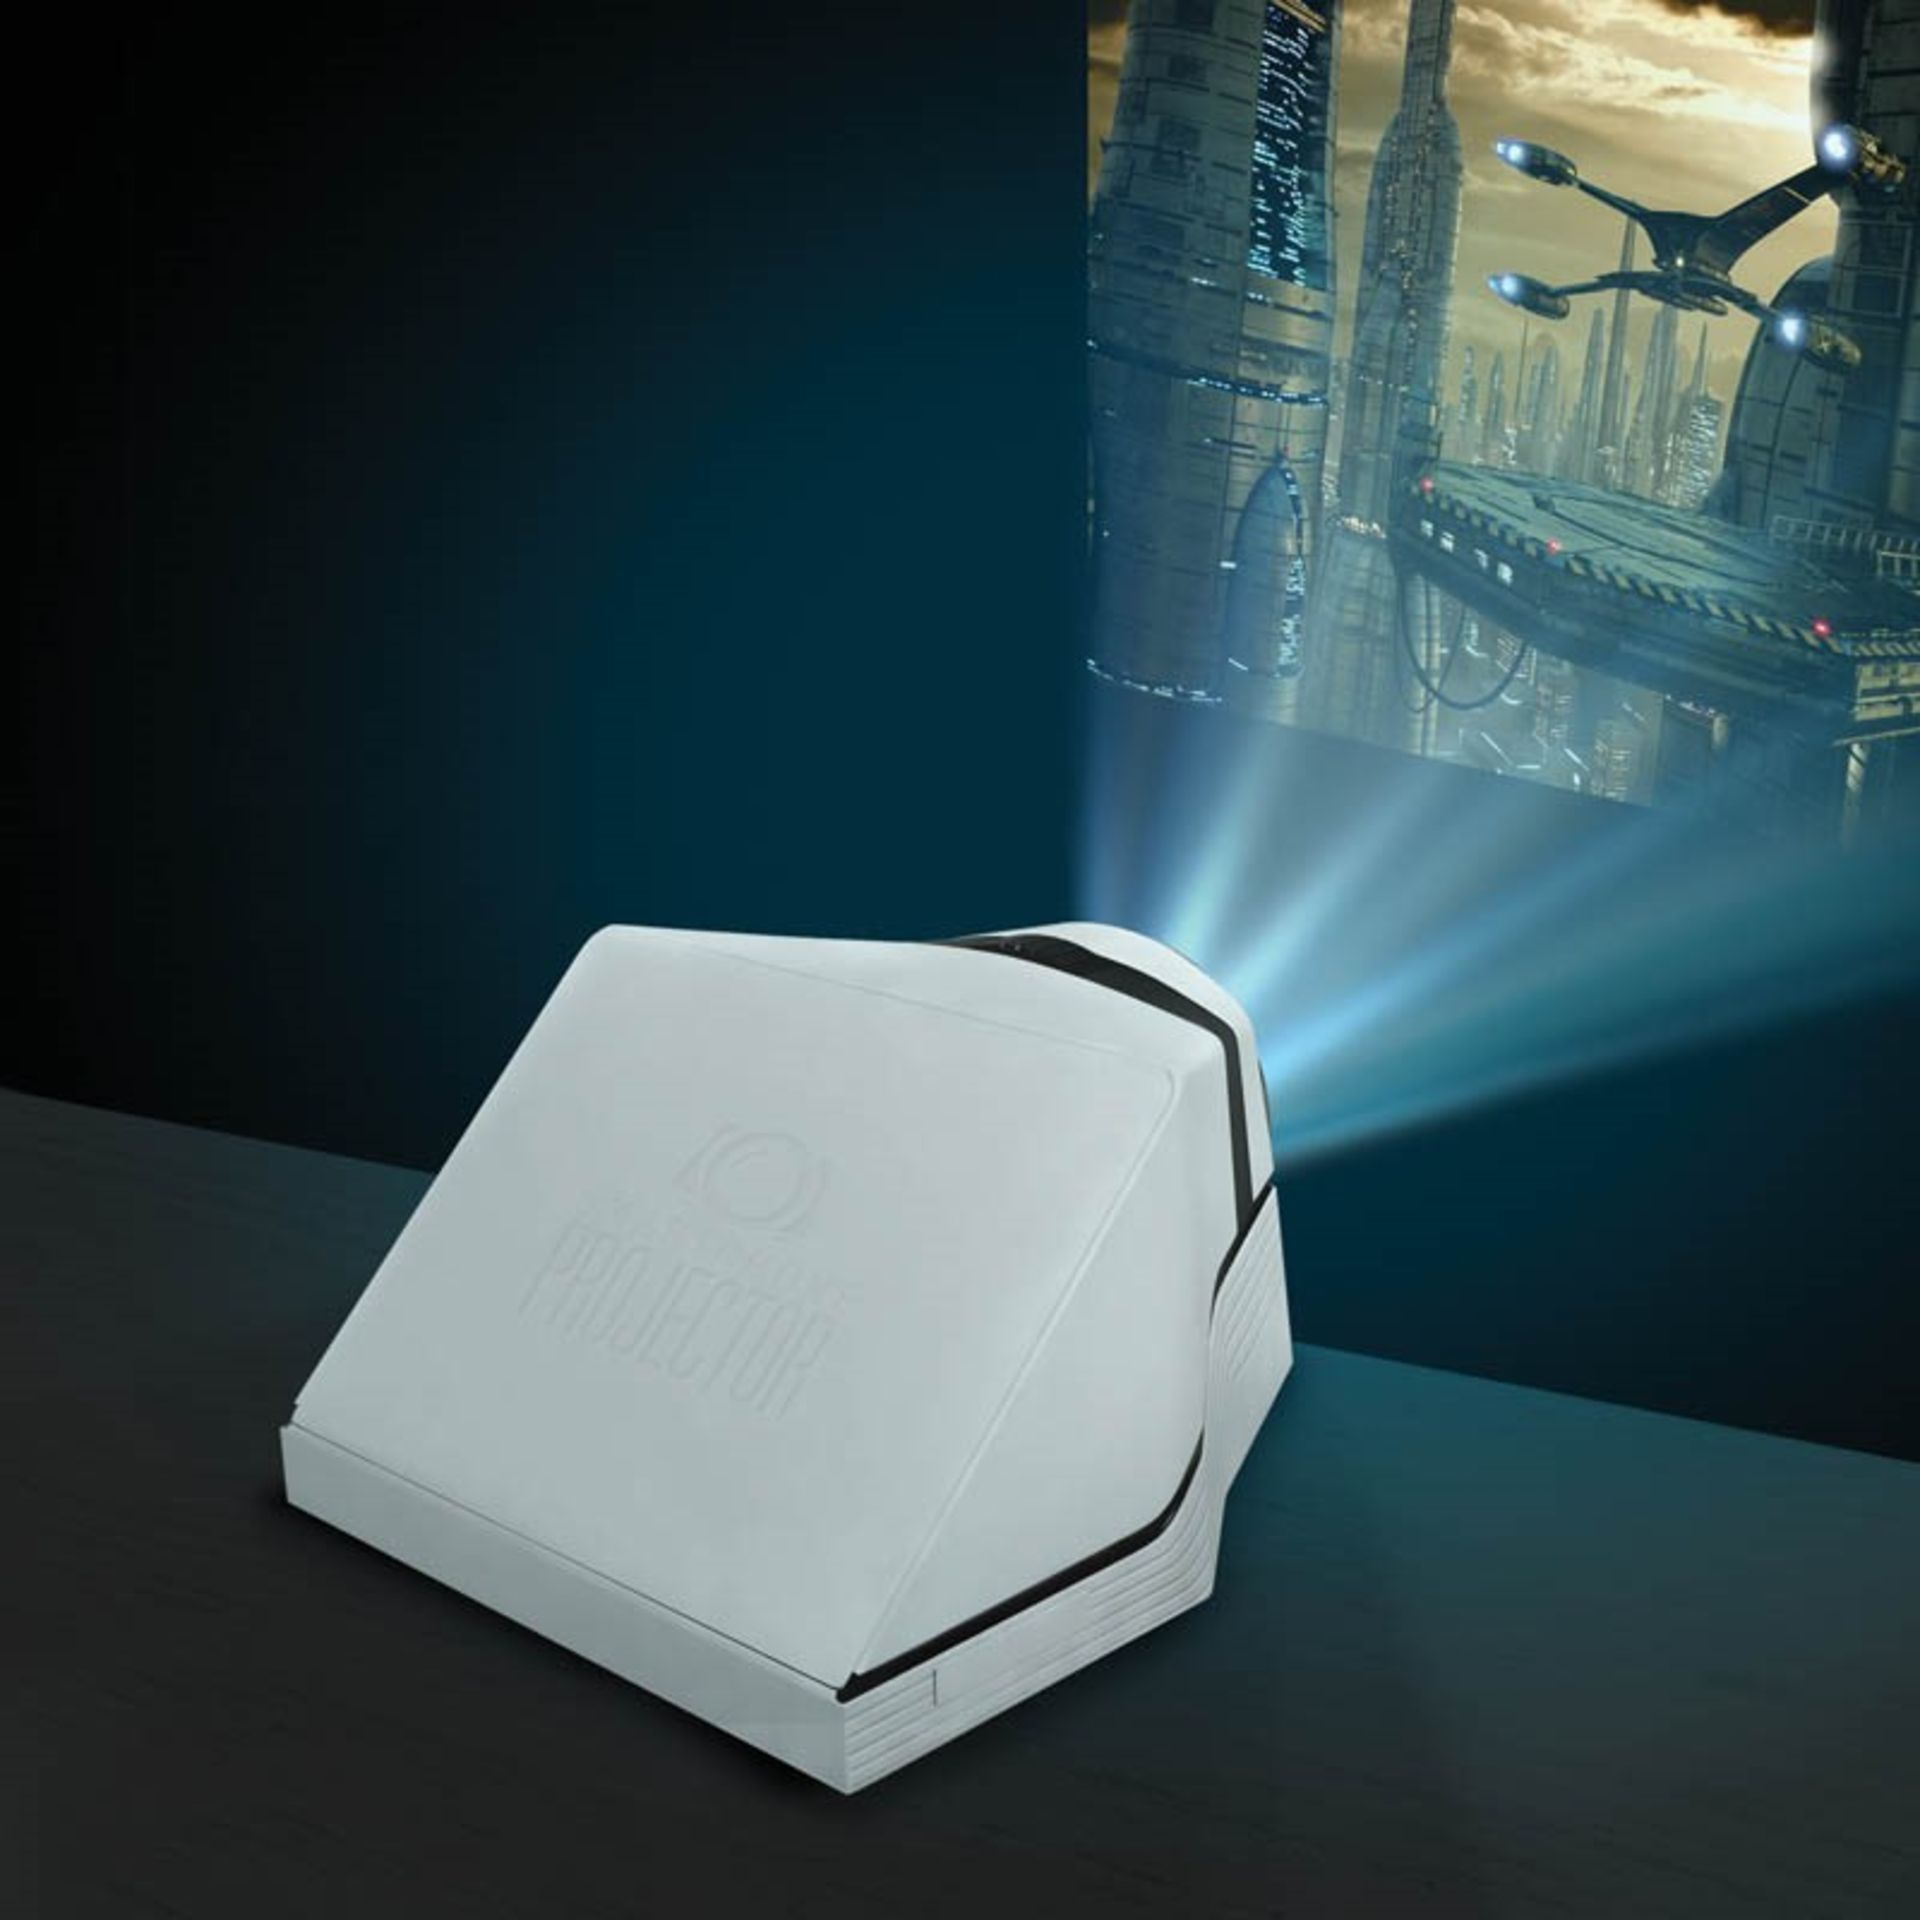 """V Brand New Smartphone Projector - Projects 40"""" Screen - Focus Up To 10x - ISP £19.99 (Paladone)"""